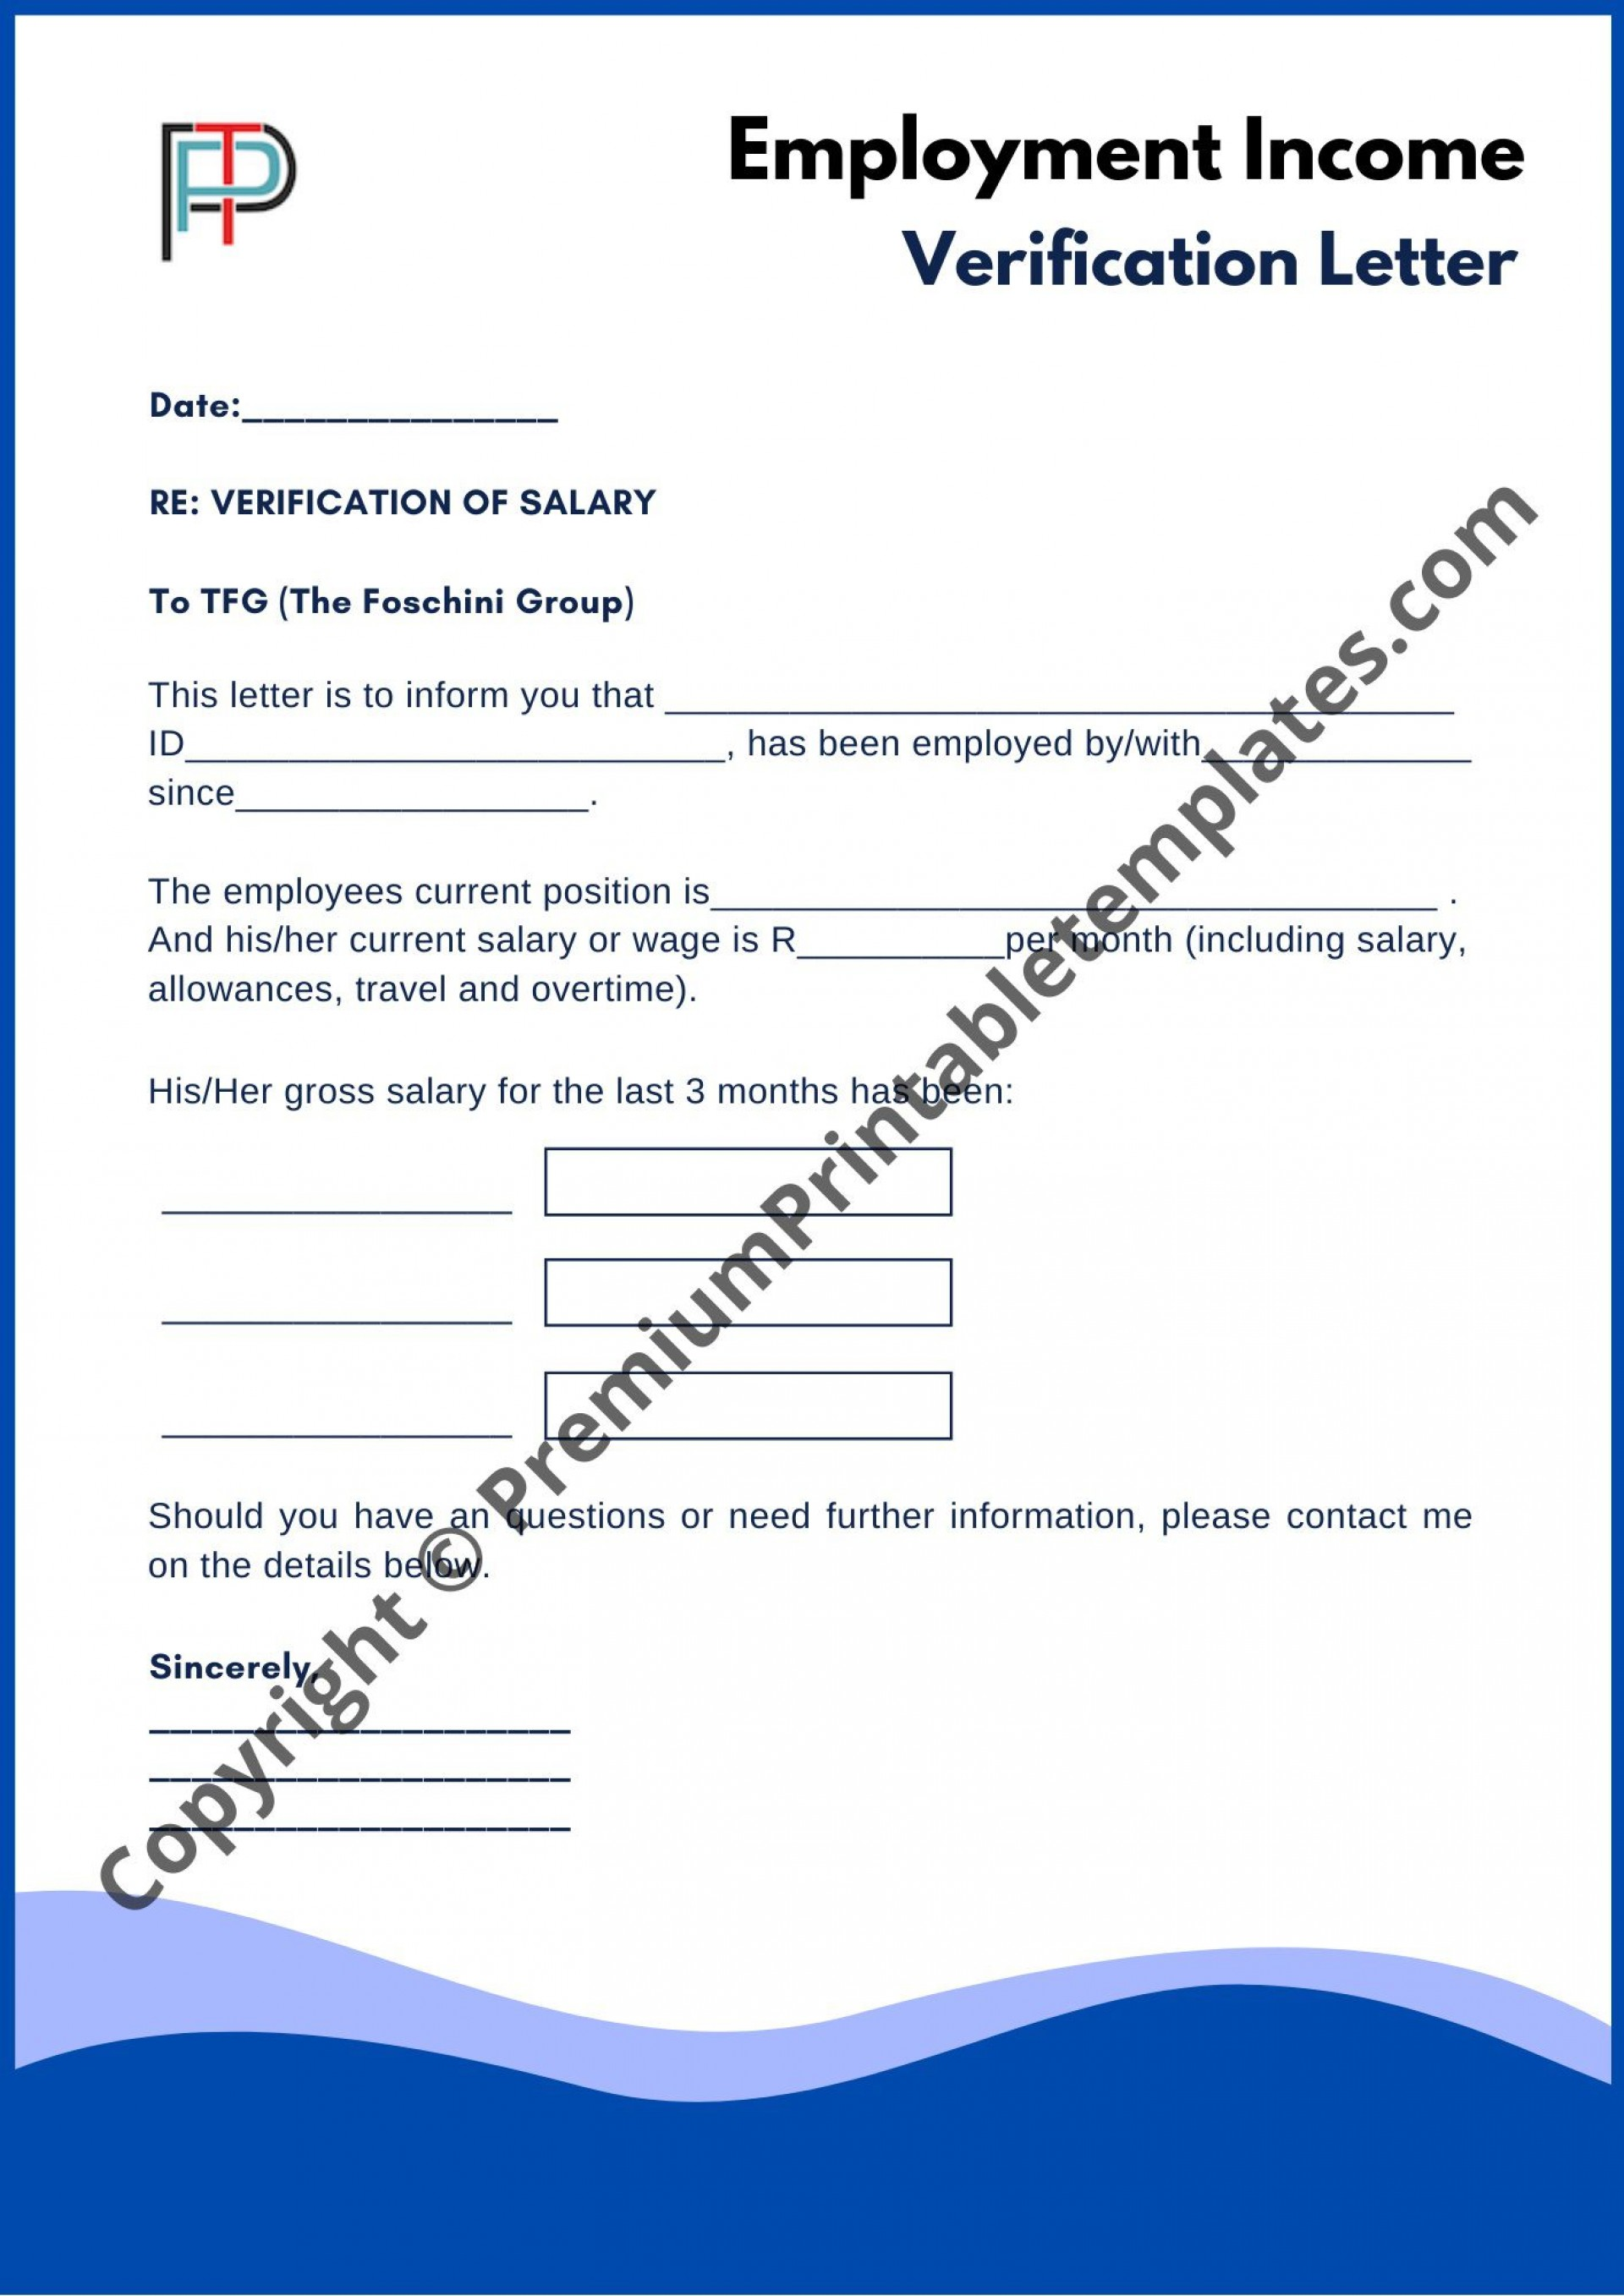 003 Stupendou Income Verification Letter Template Highest Clarity  Word From Employer Proof Of1920